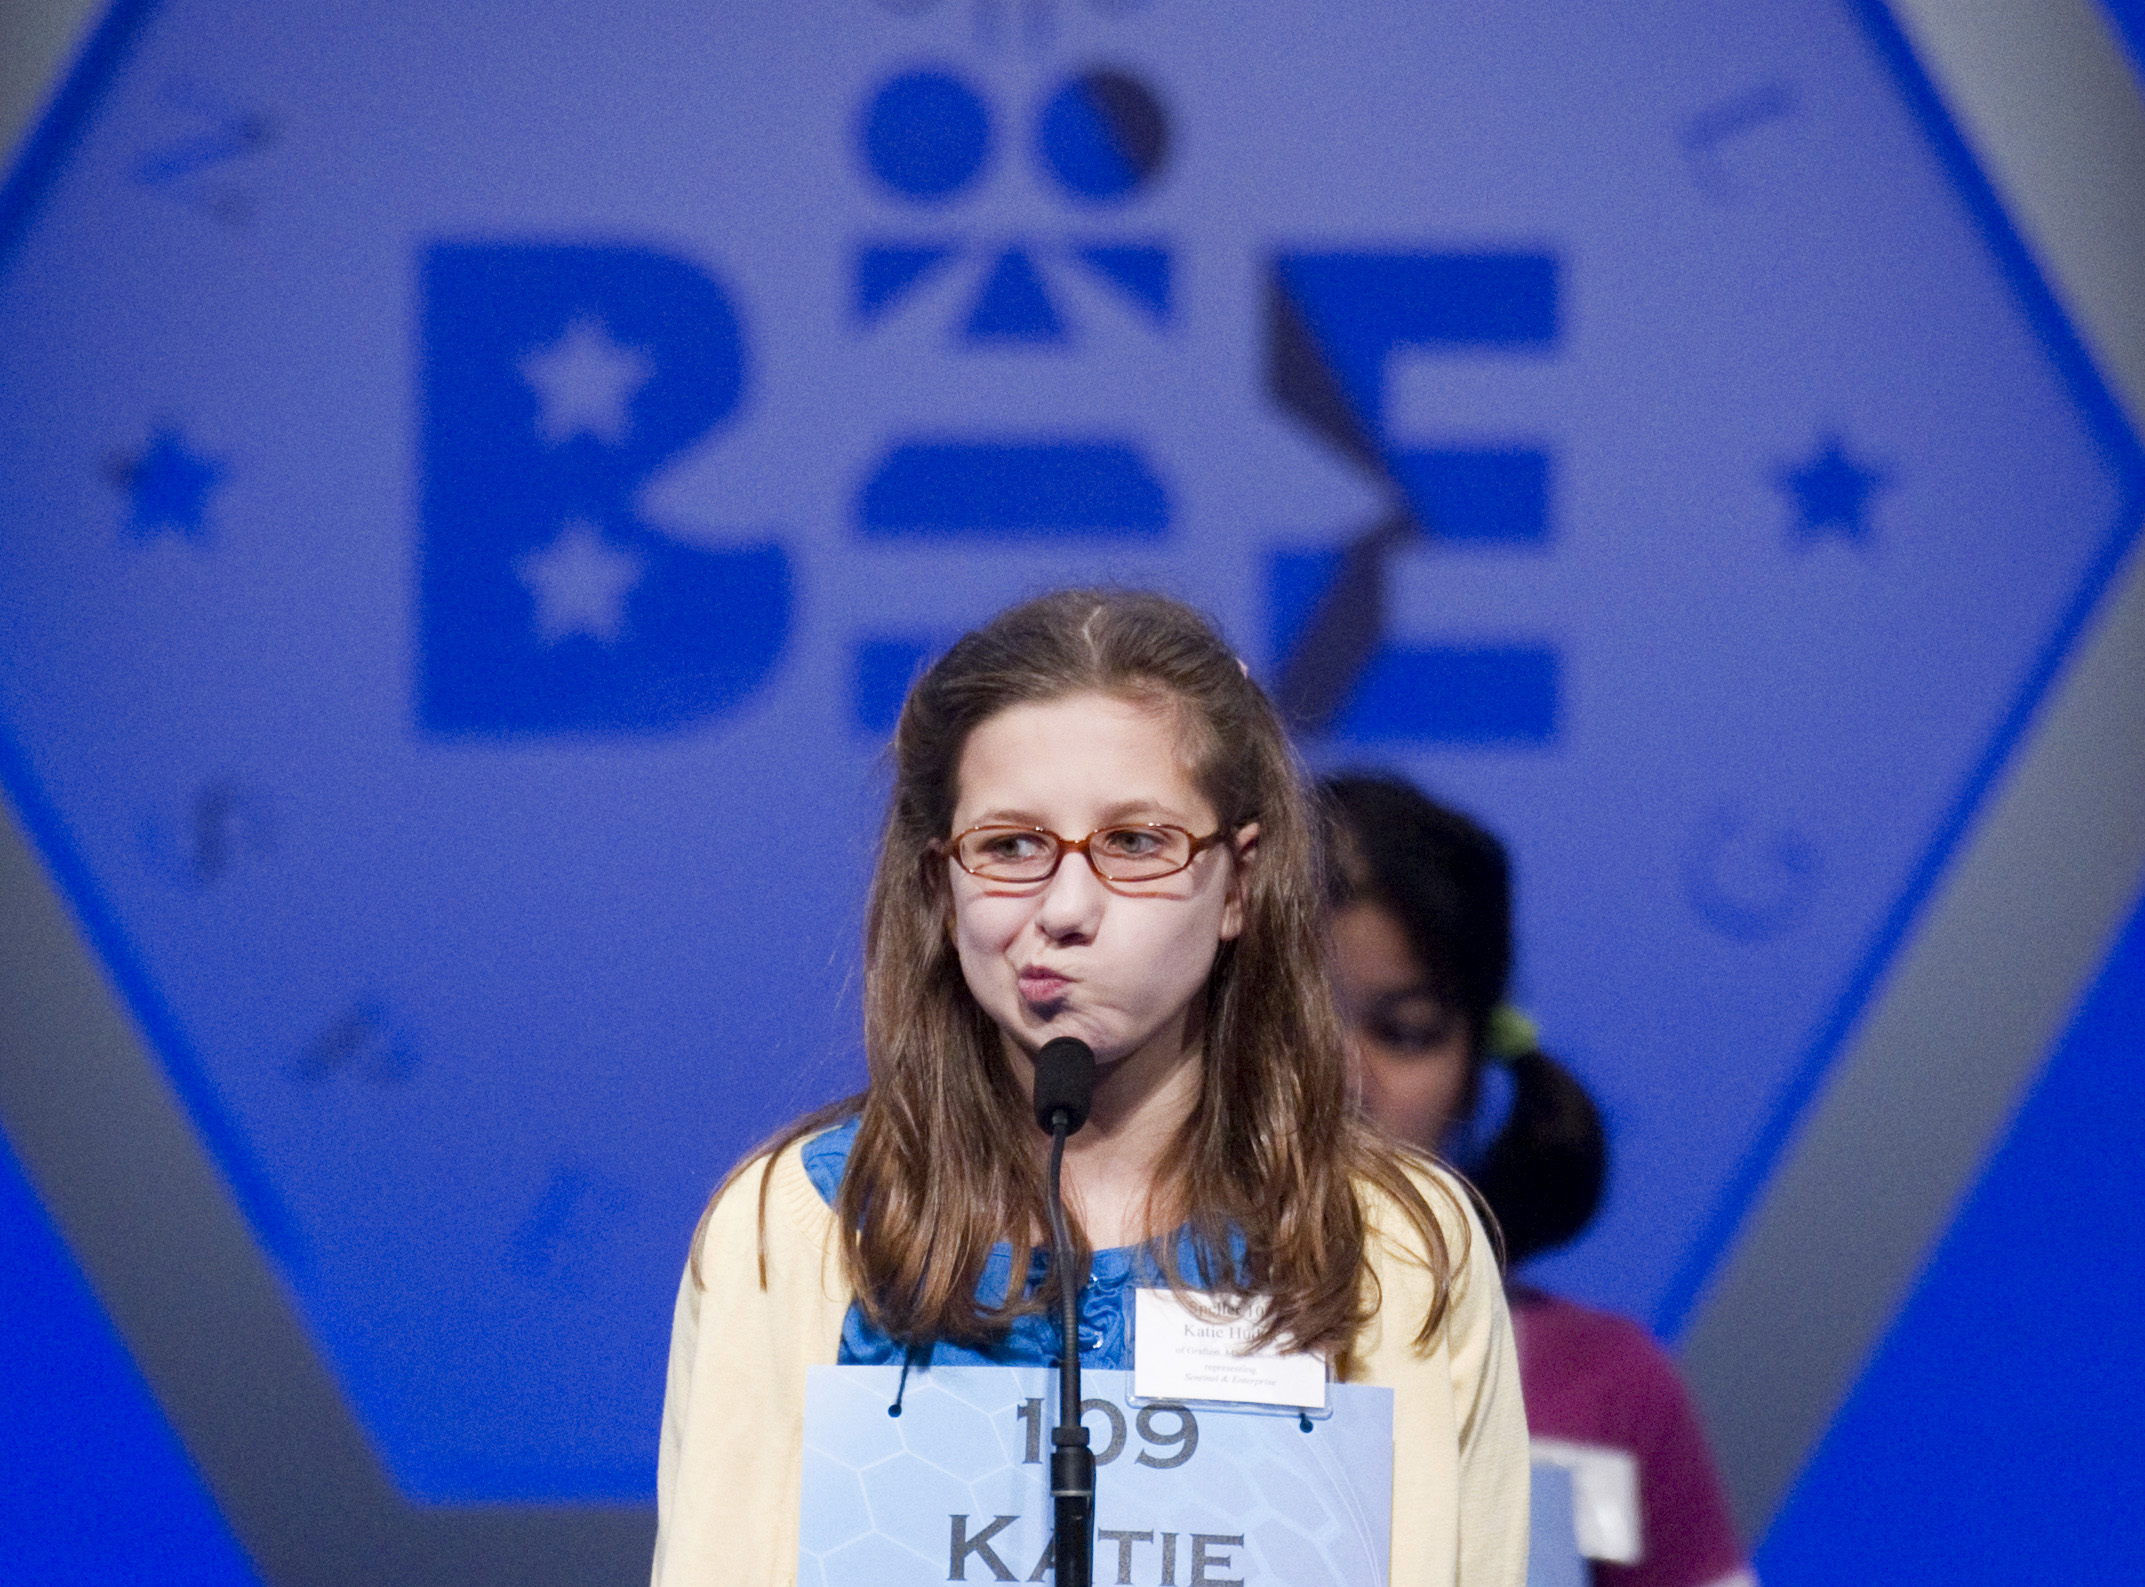 6-year-old speller leaves bee in second round